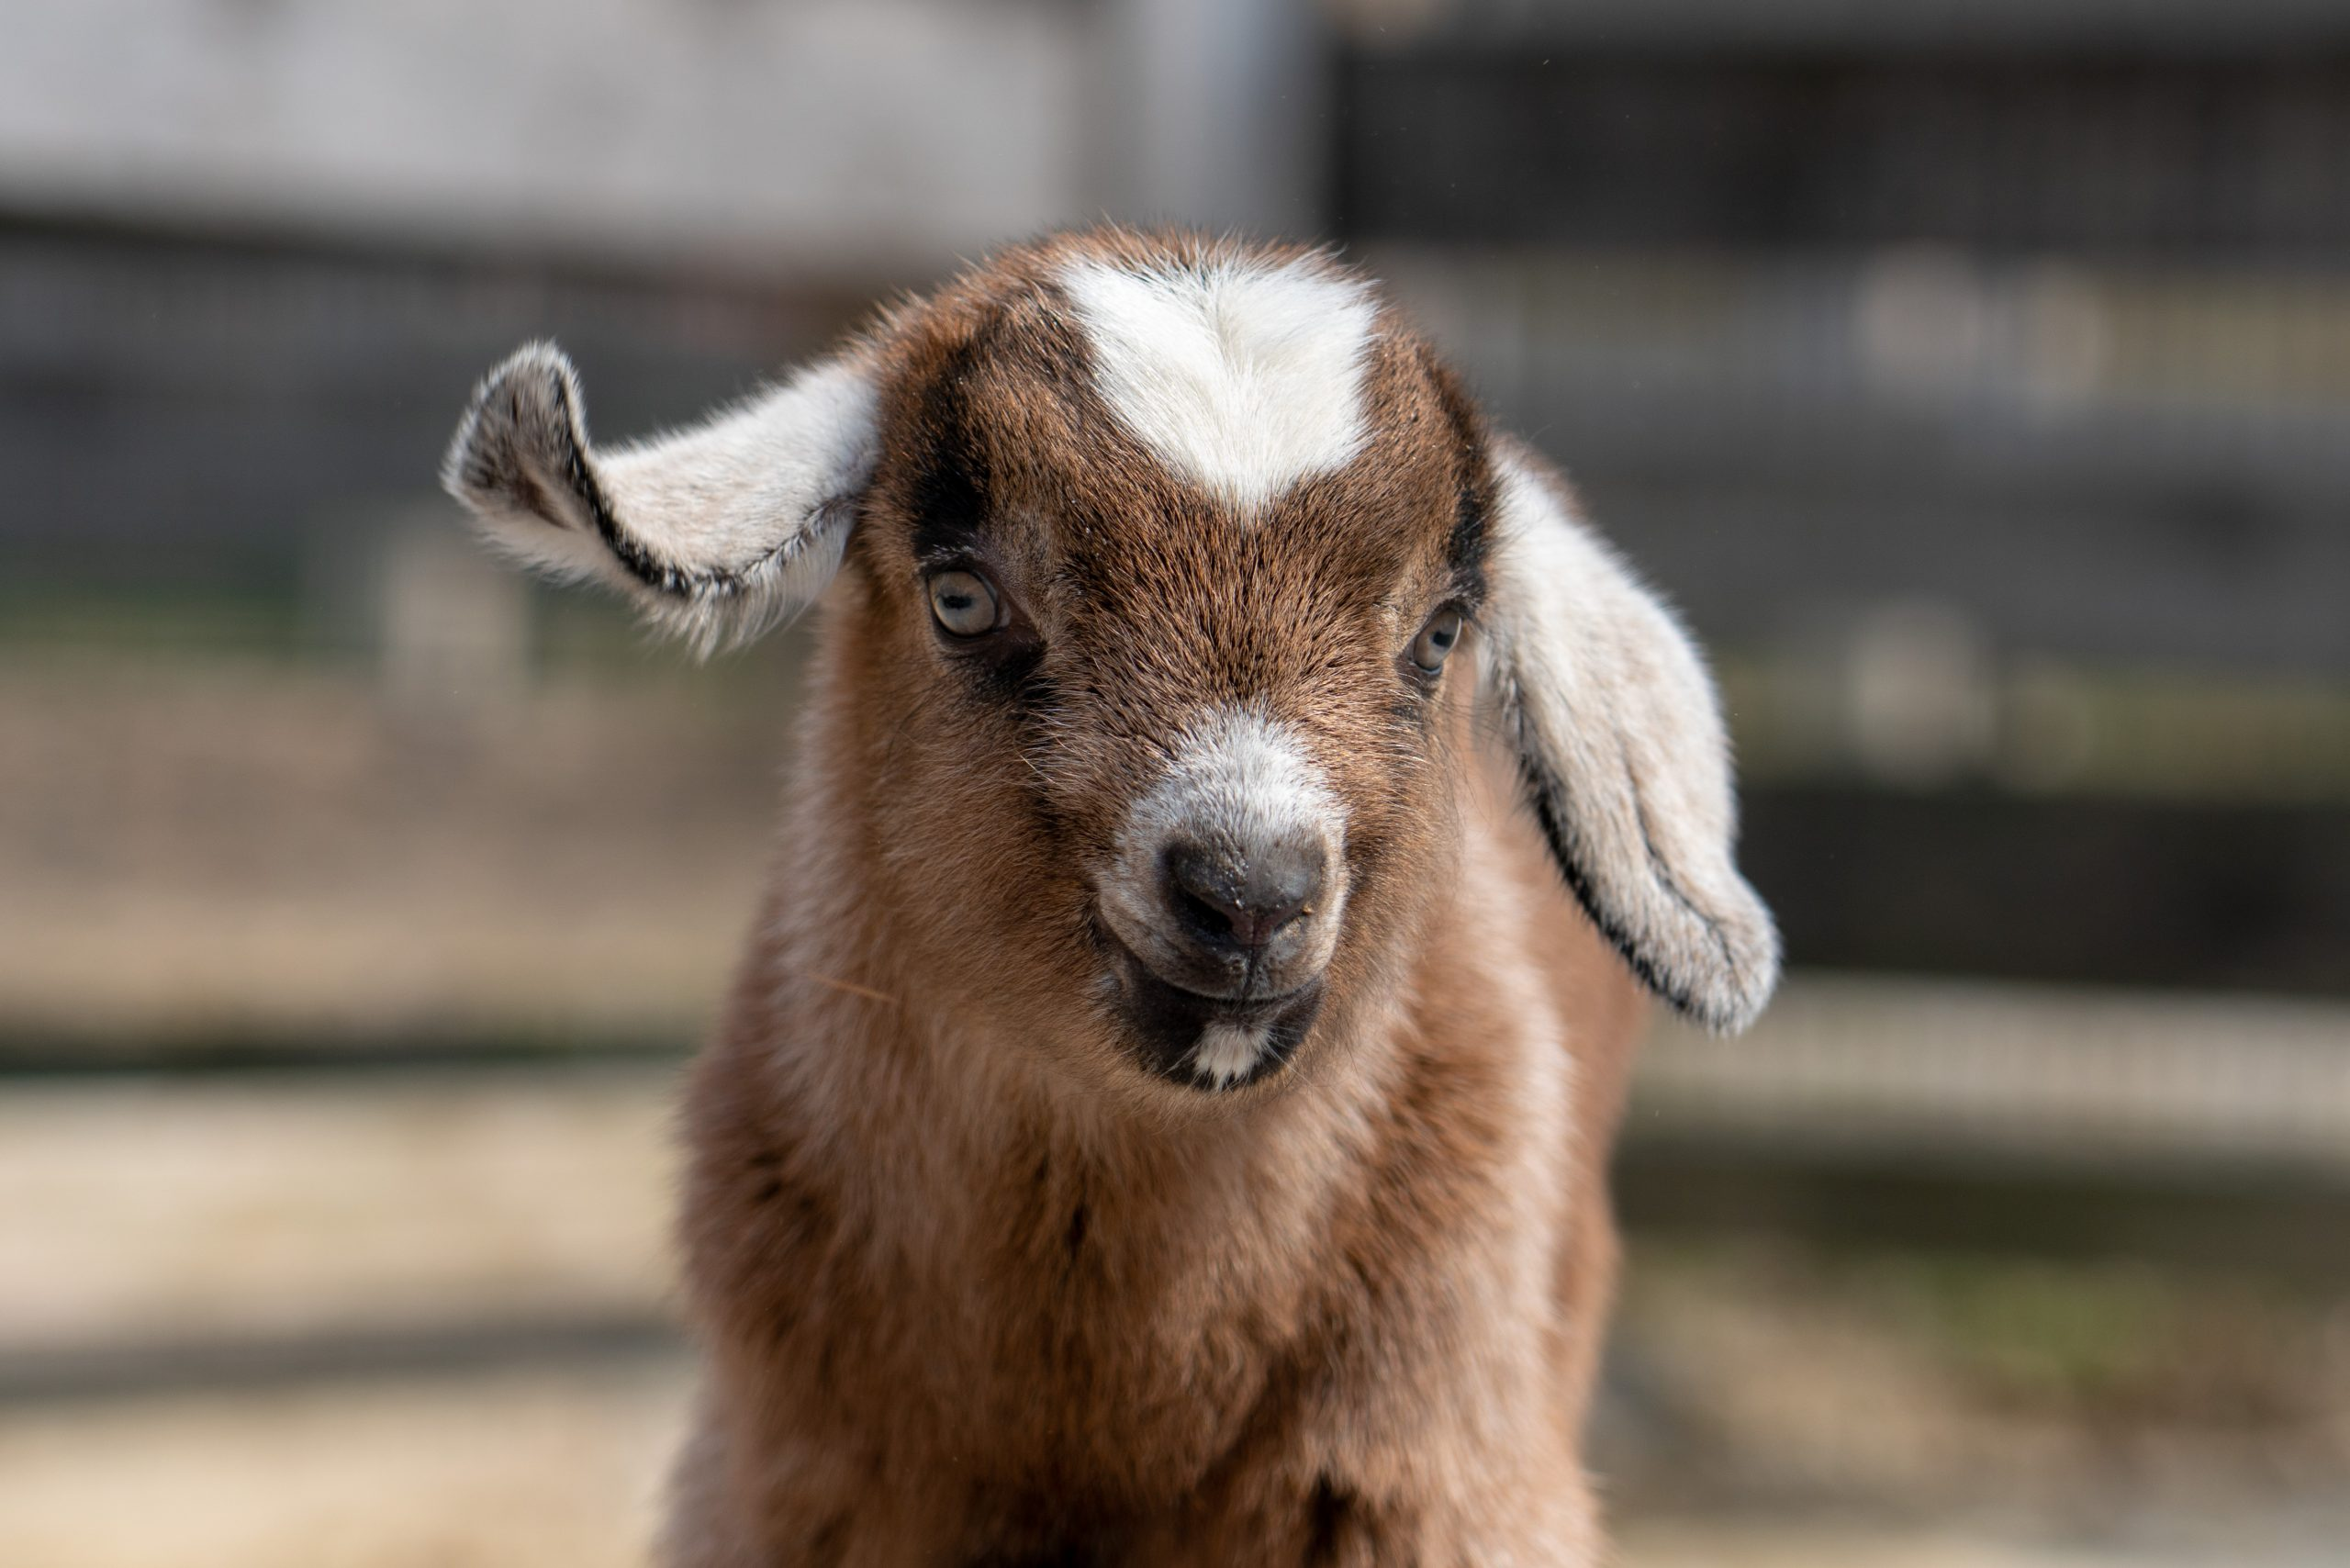 A baby goat kid.